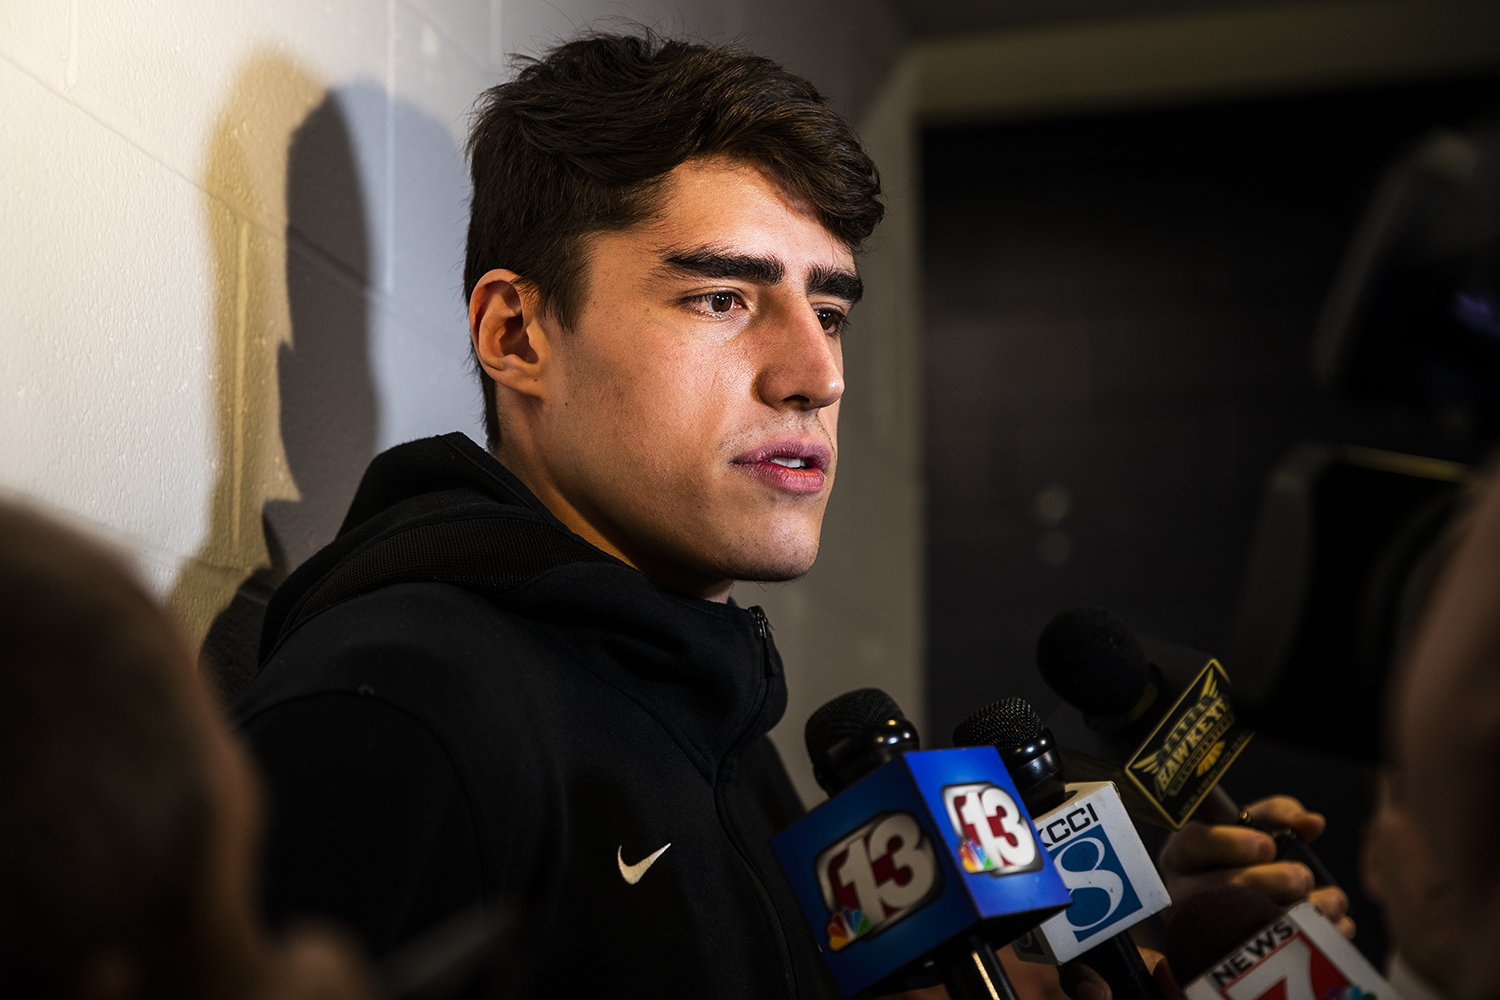 Iowa forward Luka Garza answers questions during the Iowa media availability at Nationwide Arena on Saturday, March 23, 2019.